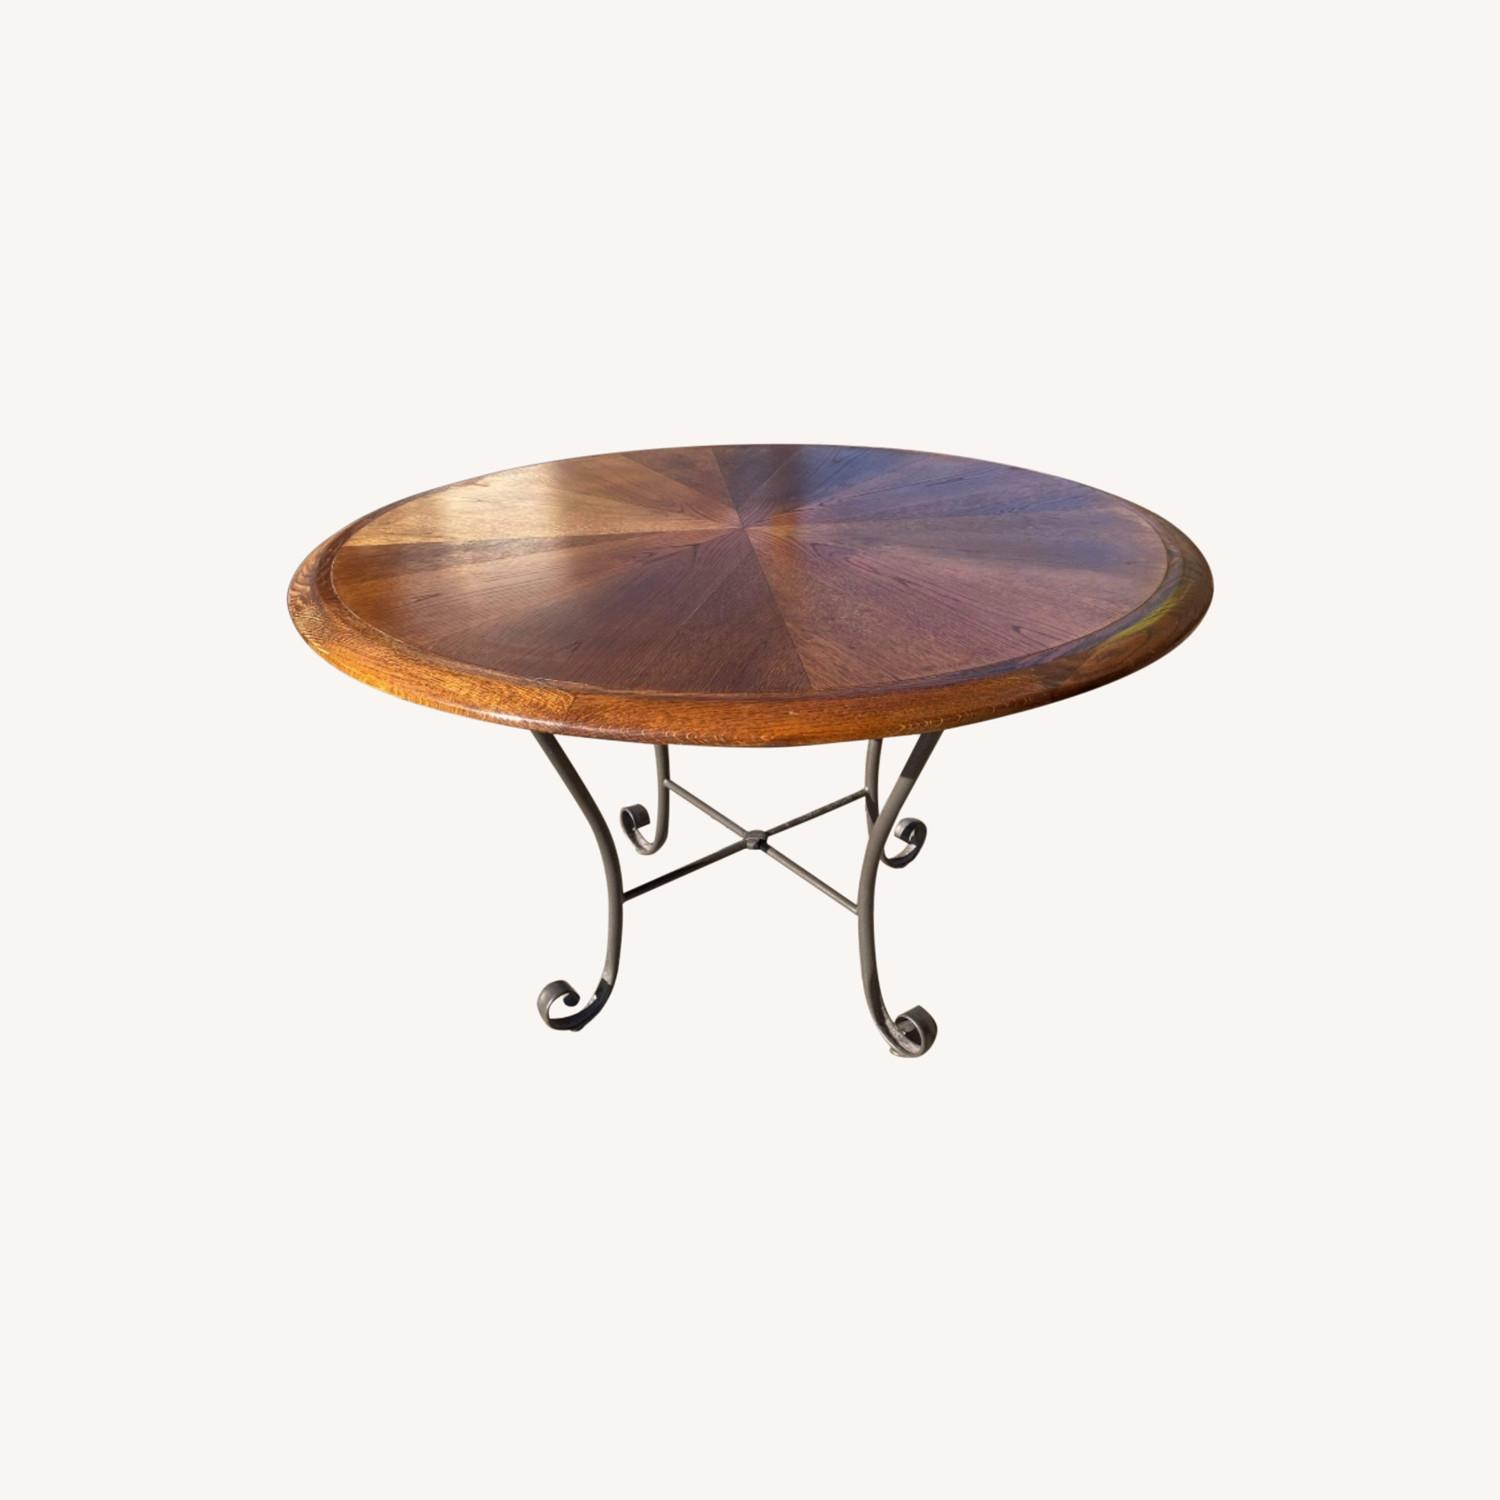 Vintage 1970s Wood & Metal Round Table - image-0